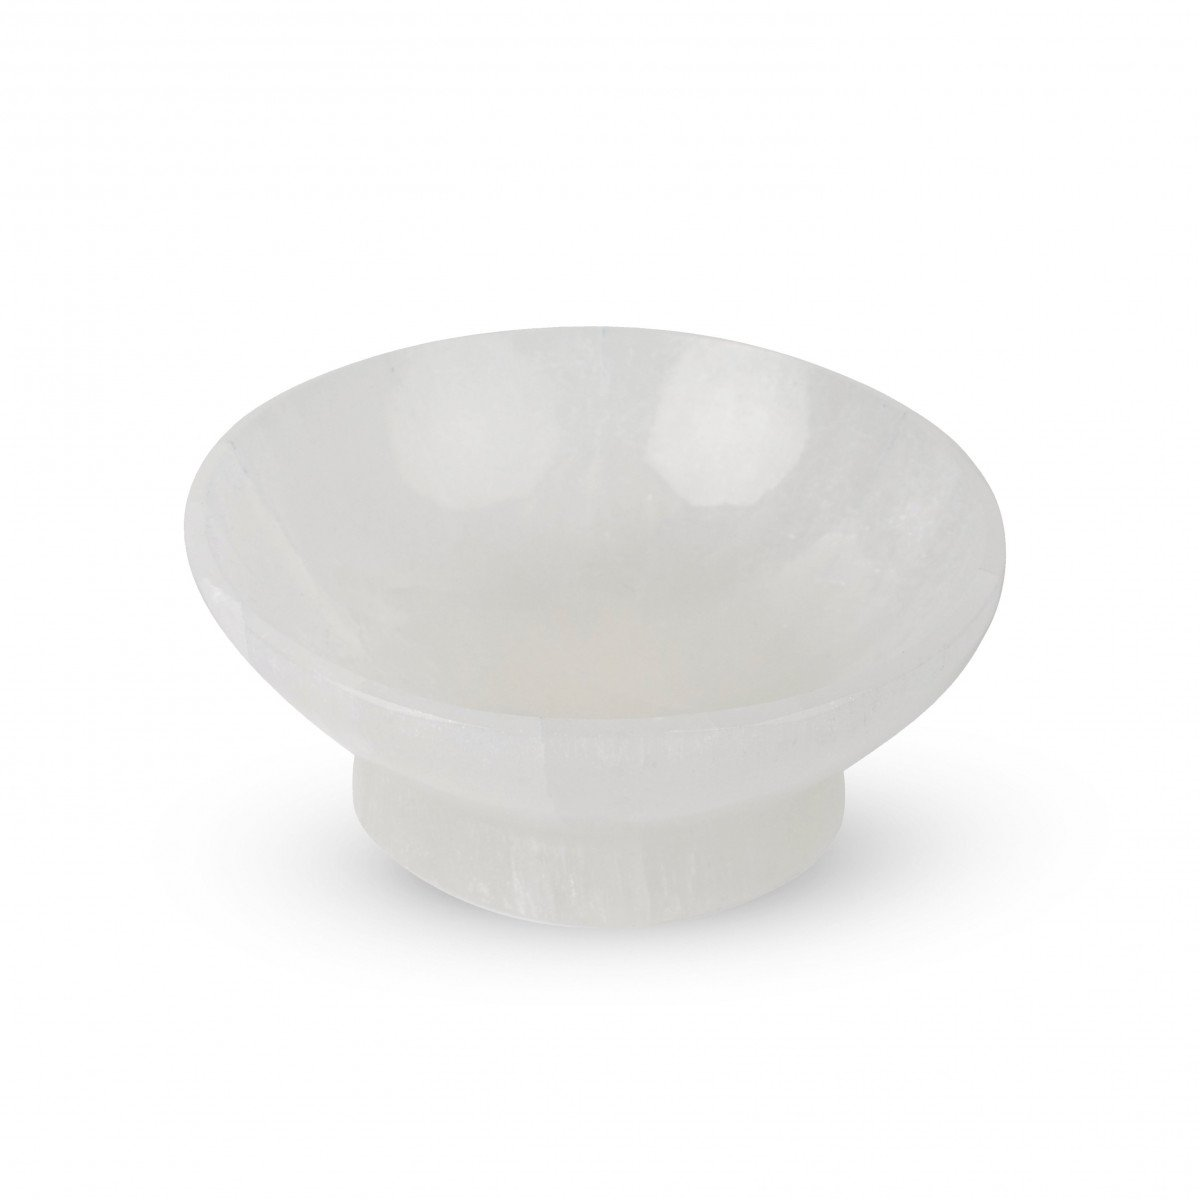 selenite bowl used in gift box experience